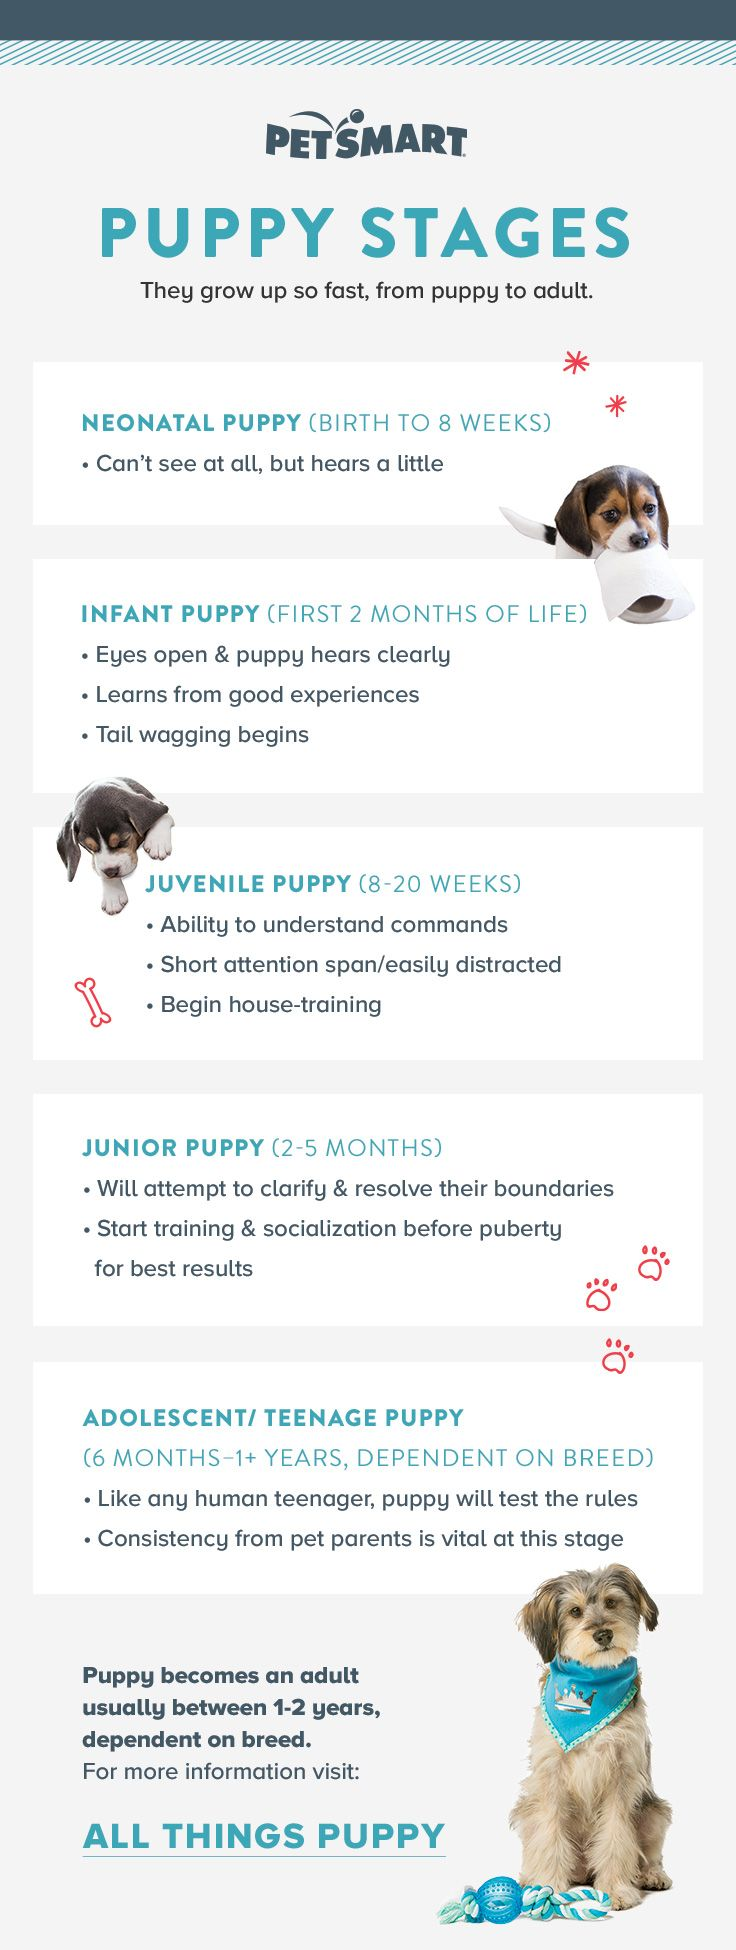 Best 25 puppy stages ideas on pinterest puppy care new puppy did you know there are so many stages in your puppys development from birth nvjuhfo Choice Image